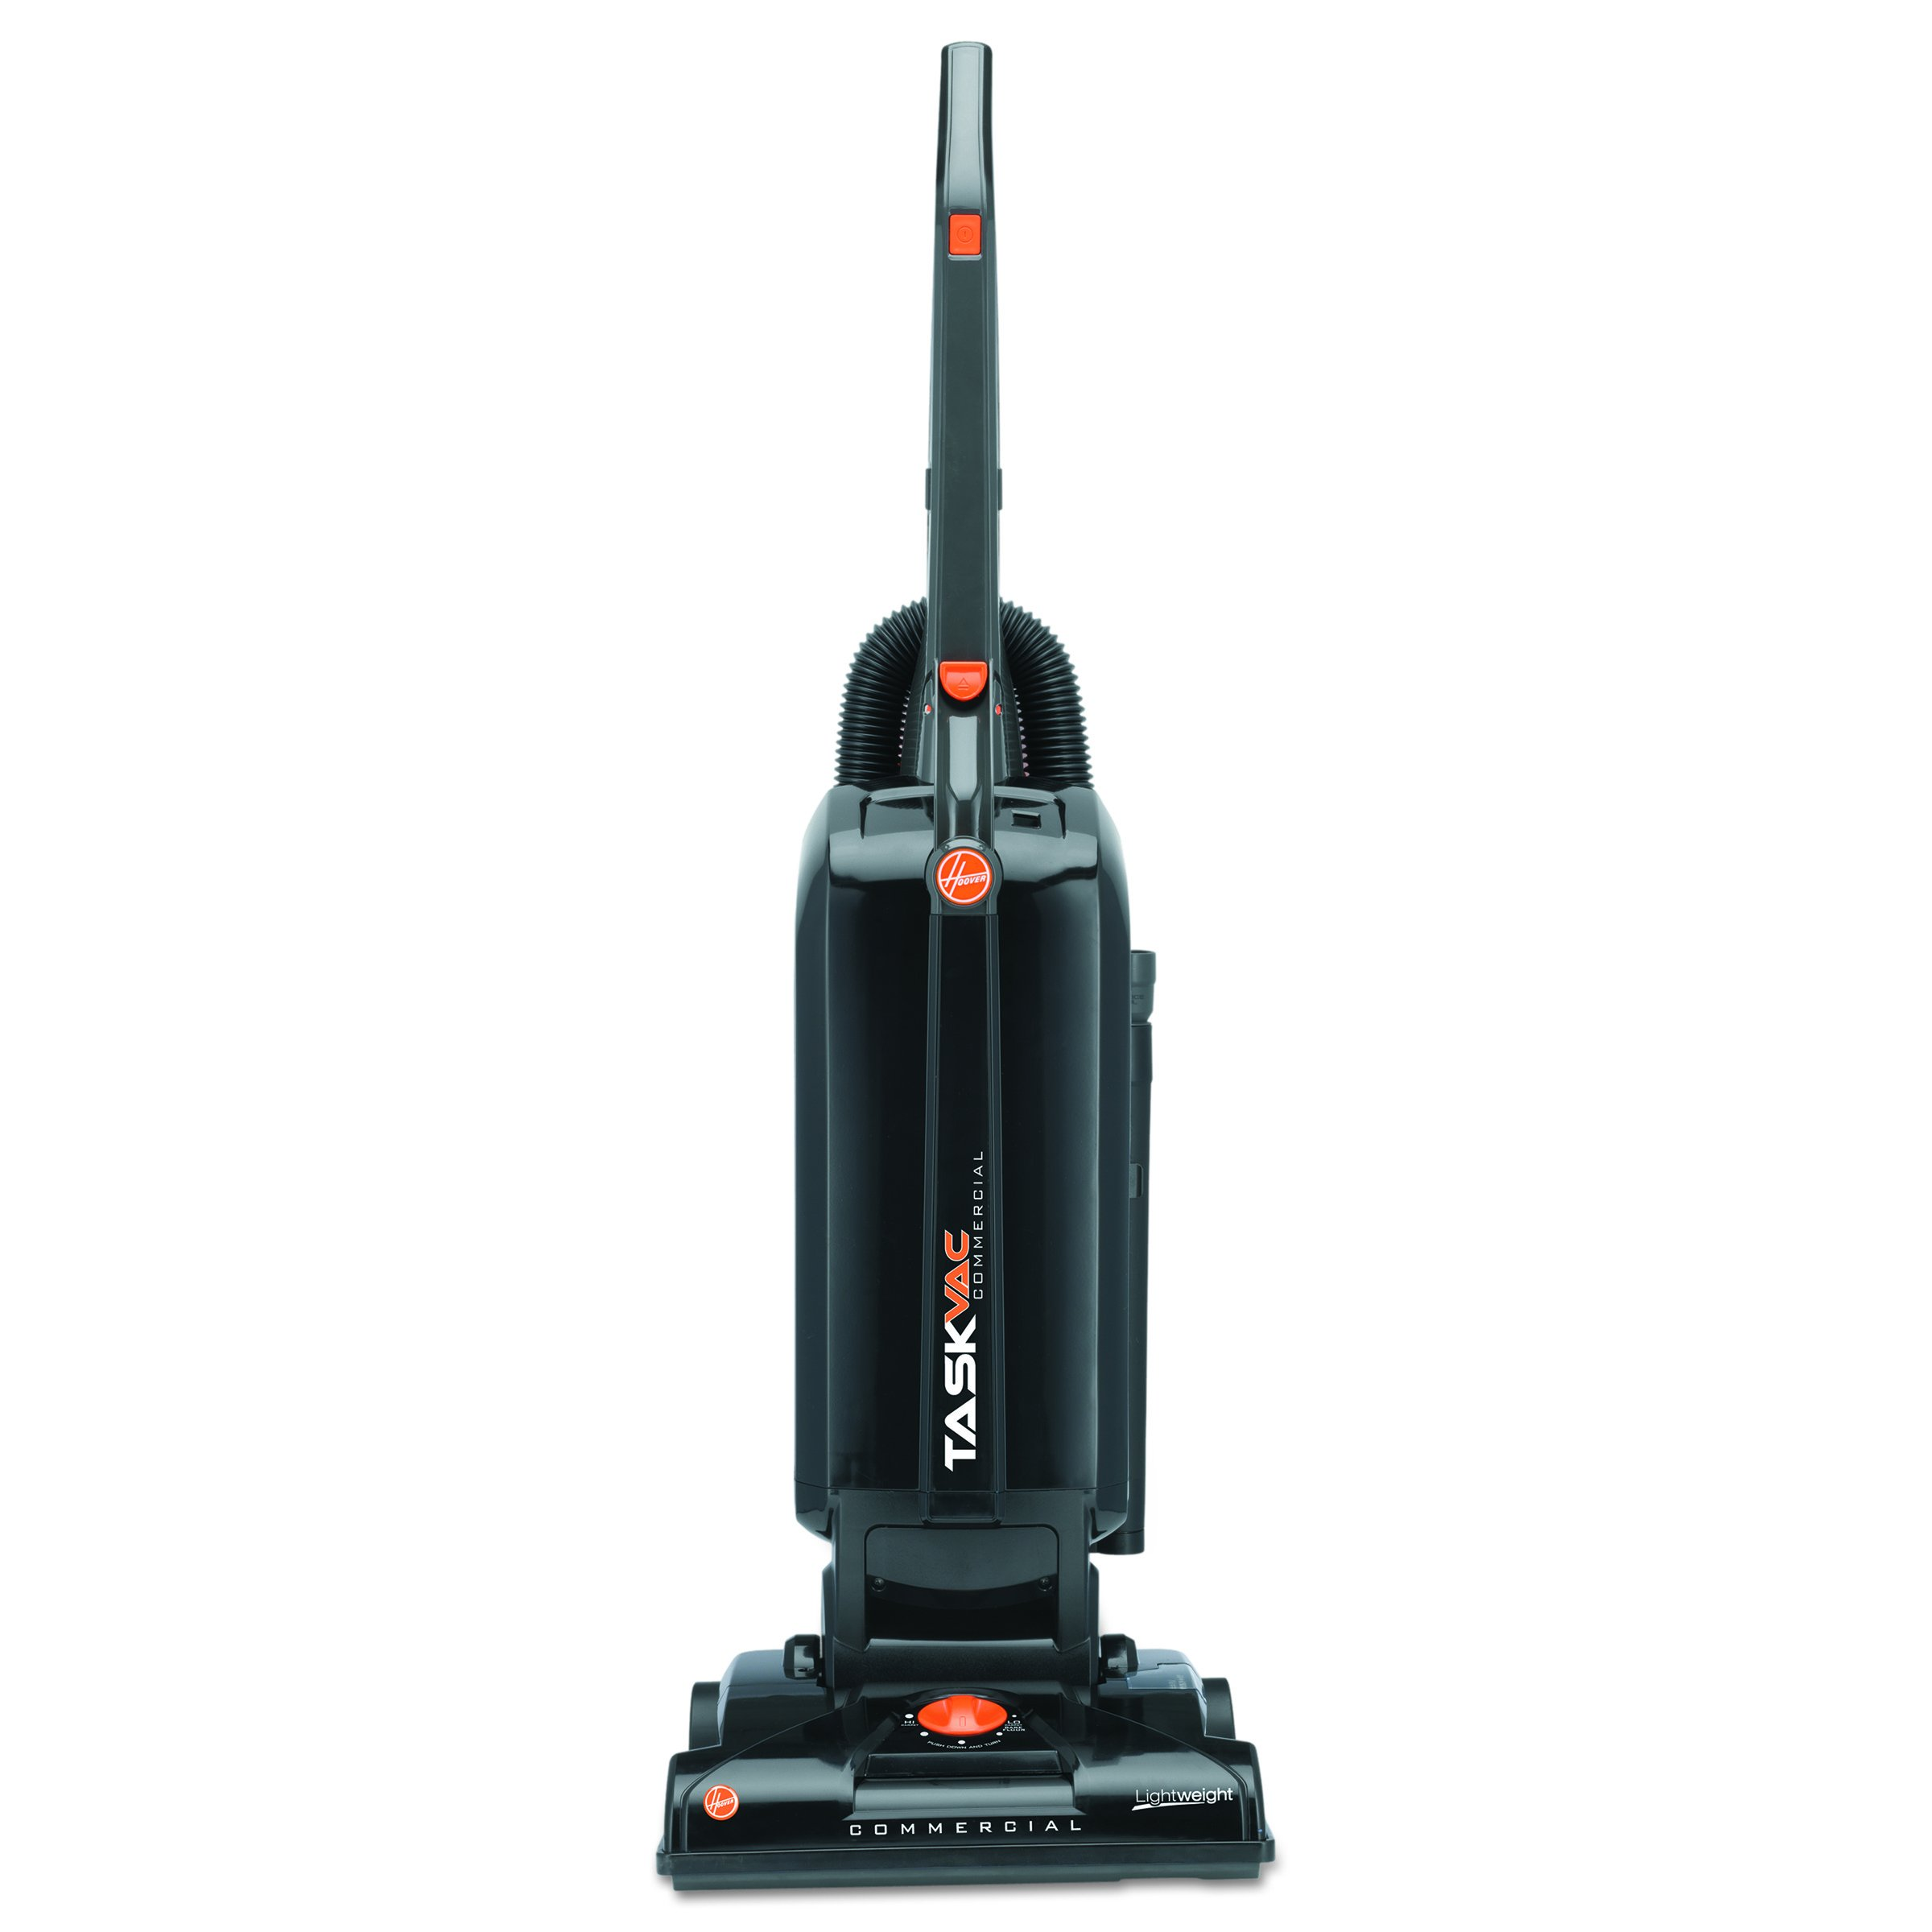 Hoover Commercial CH53005 TaskVac Hard-Bagged Lightweight Upright Vacuum, 13-Inch by Hoover Commercial